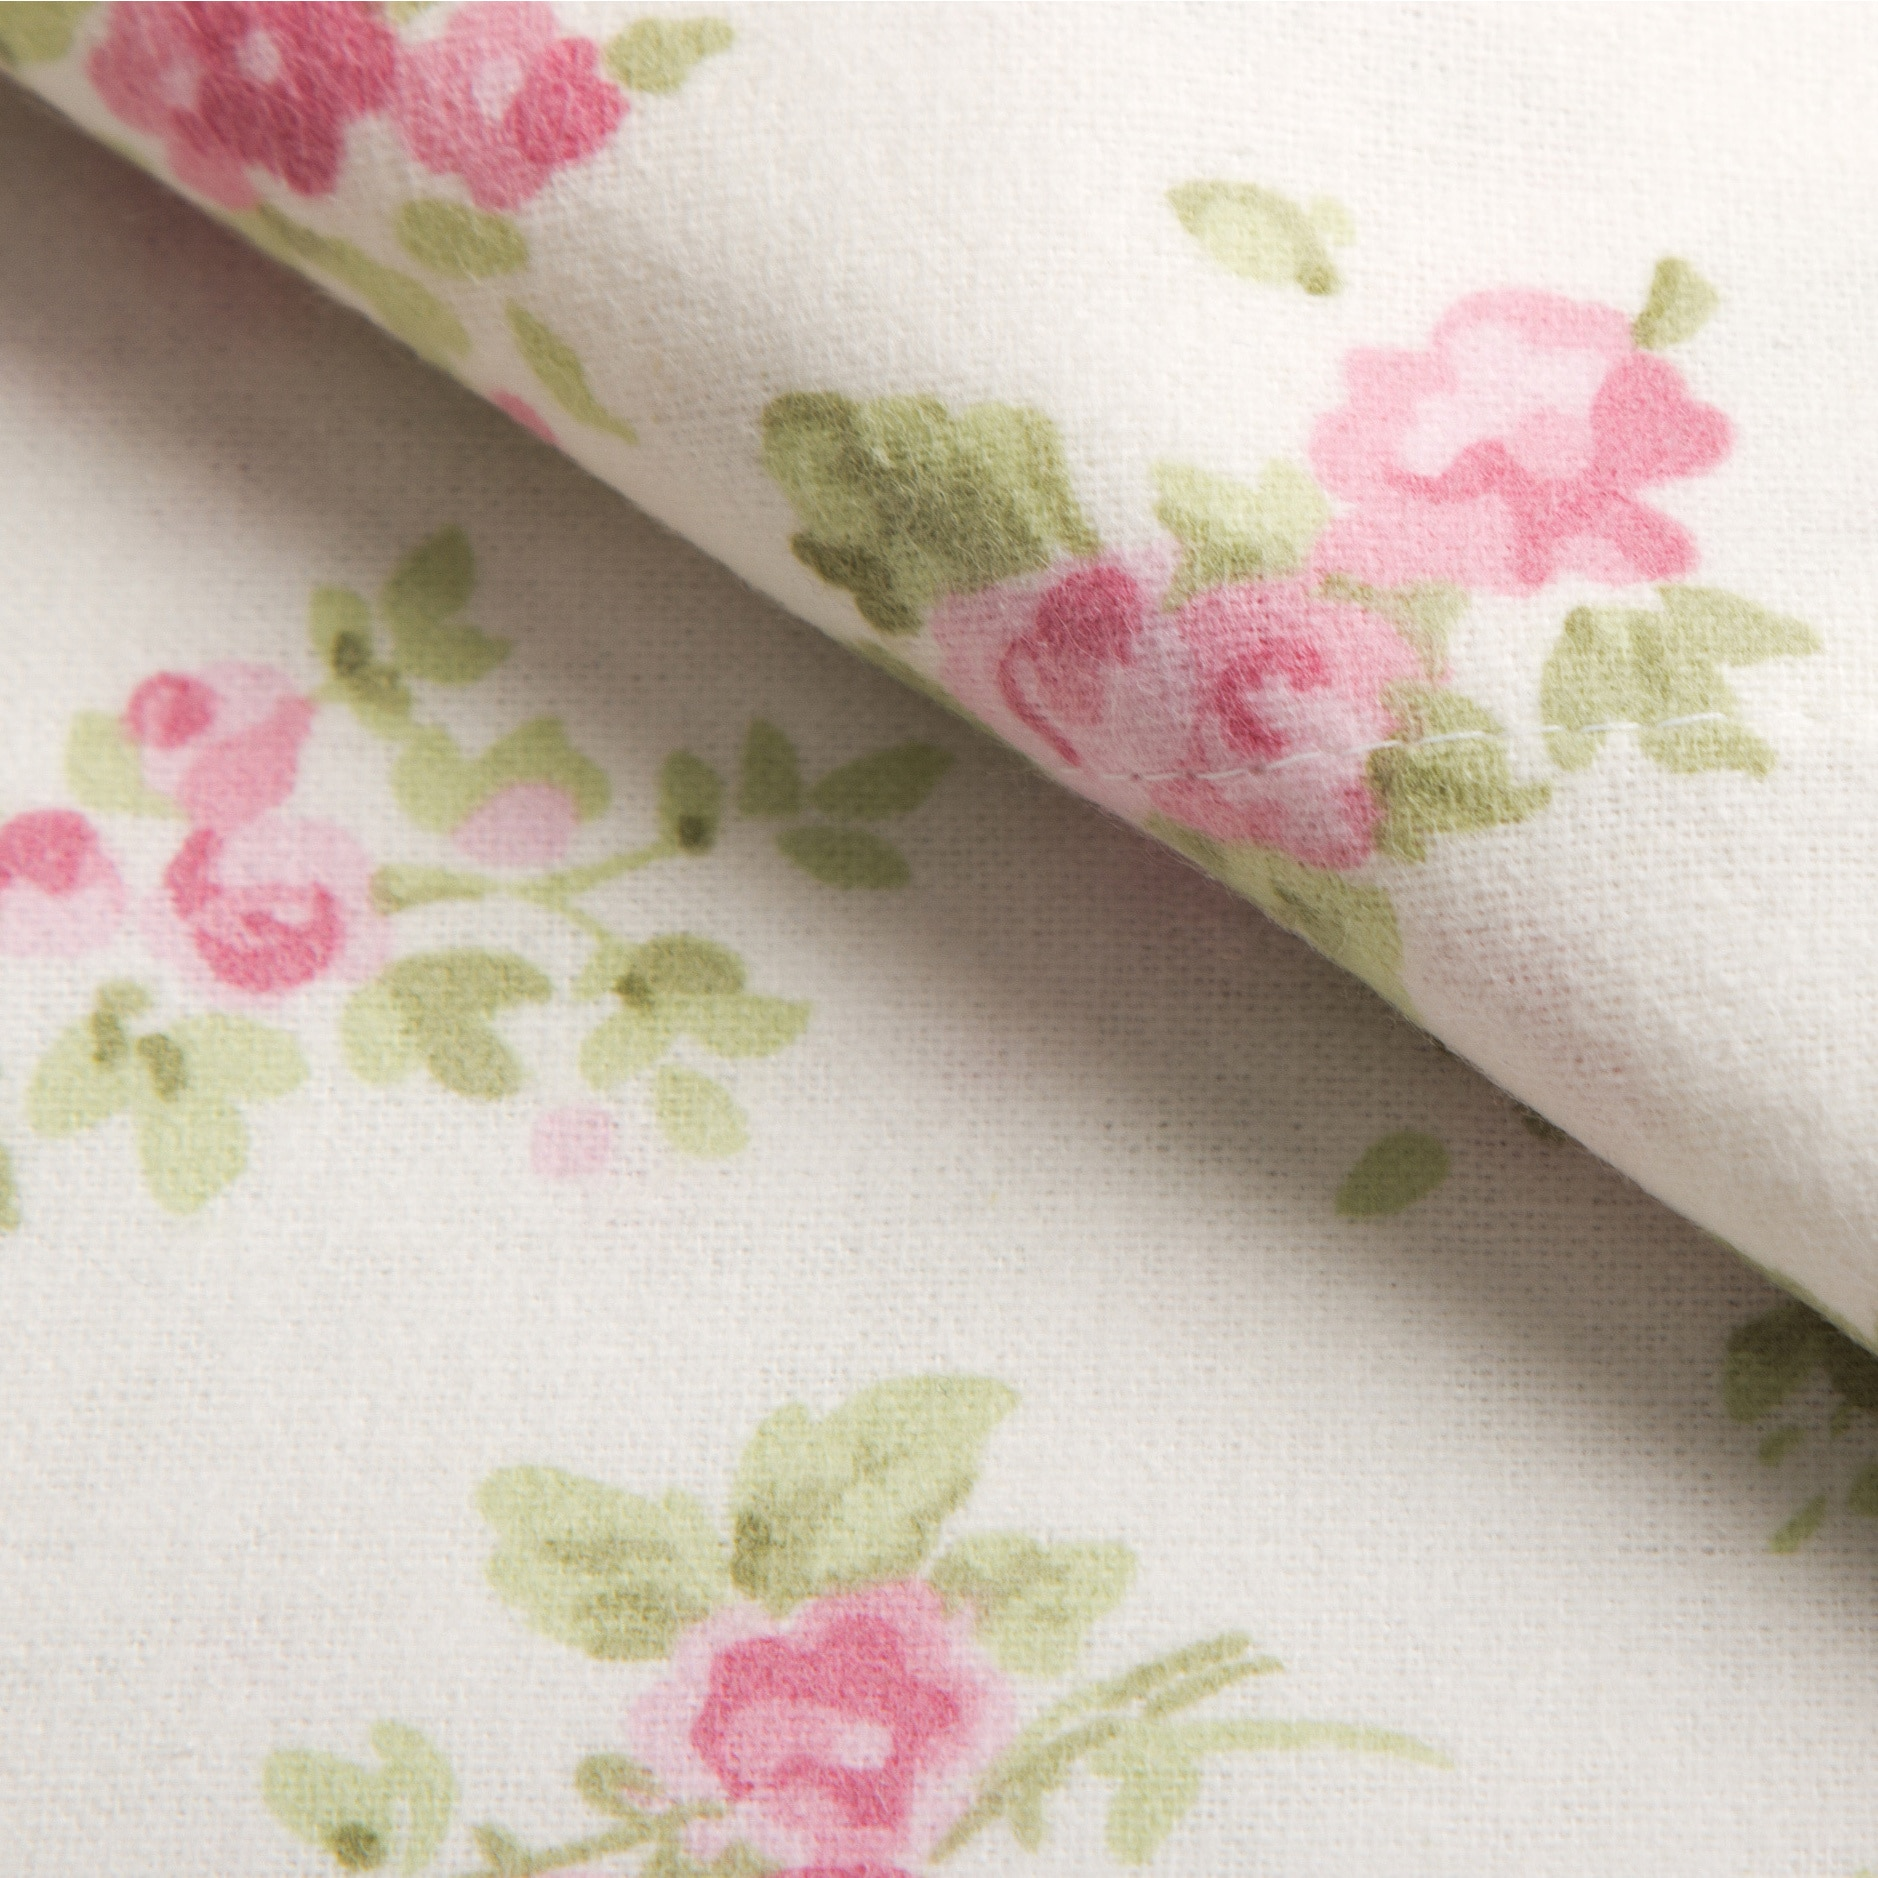 Cloth /& Canopy Full Size Floral Sheet Set Gray Petals Pattern on White Double Bed Cotton Luxury Blossom